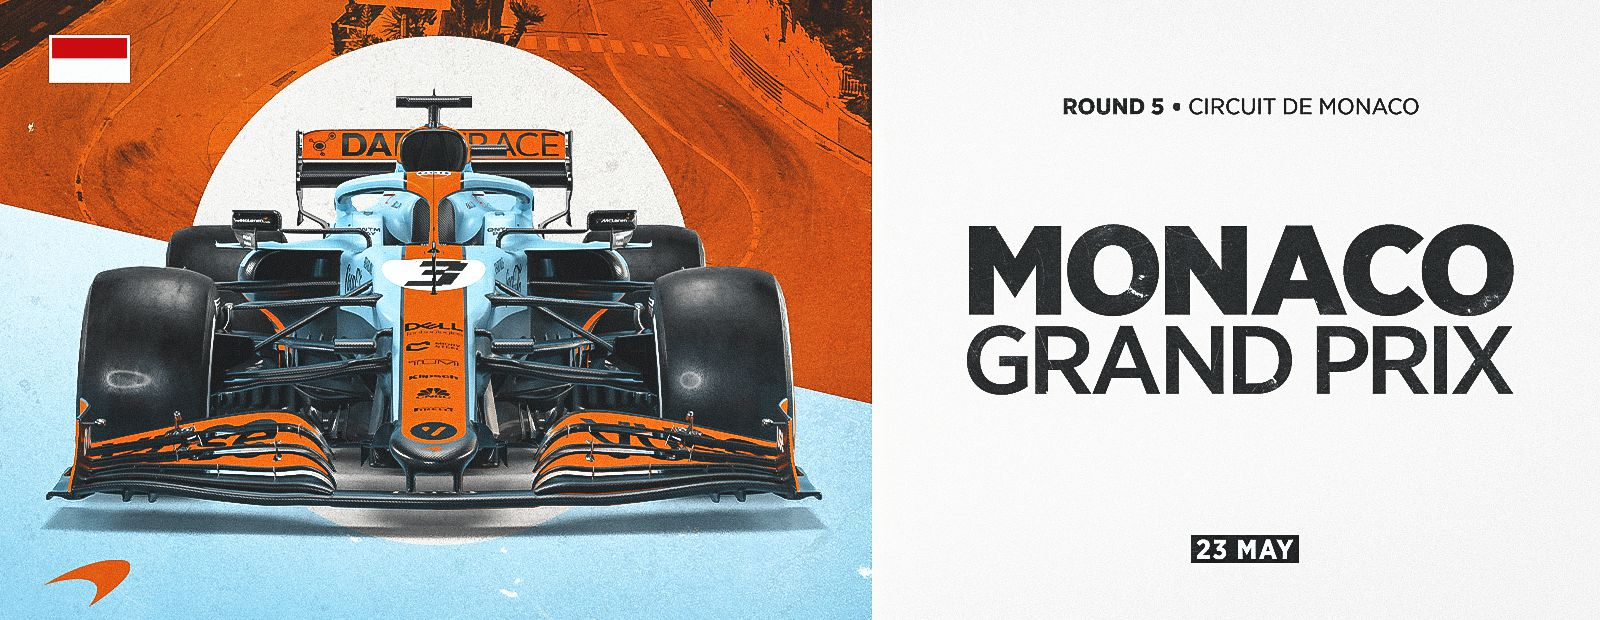 Everything you need to know for the Monaco Grand Prix